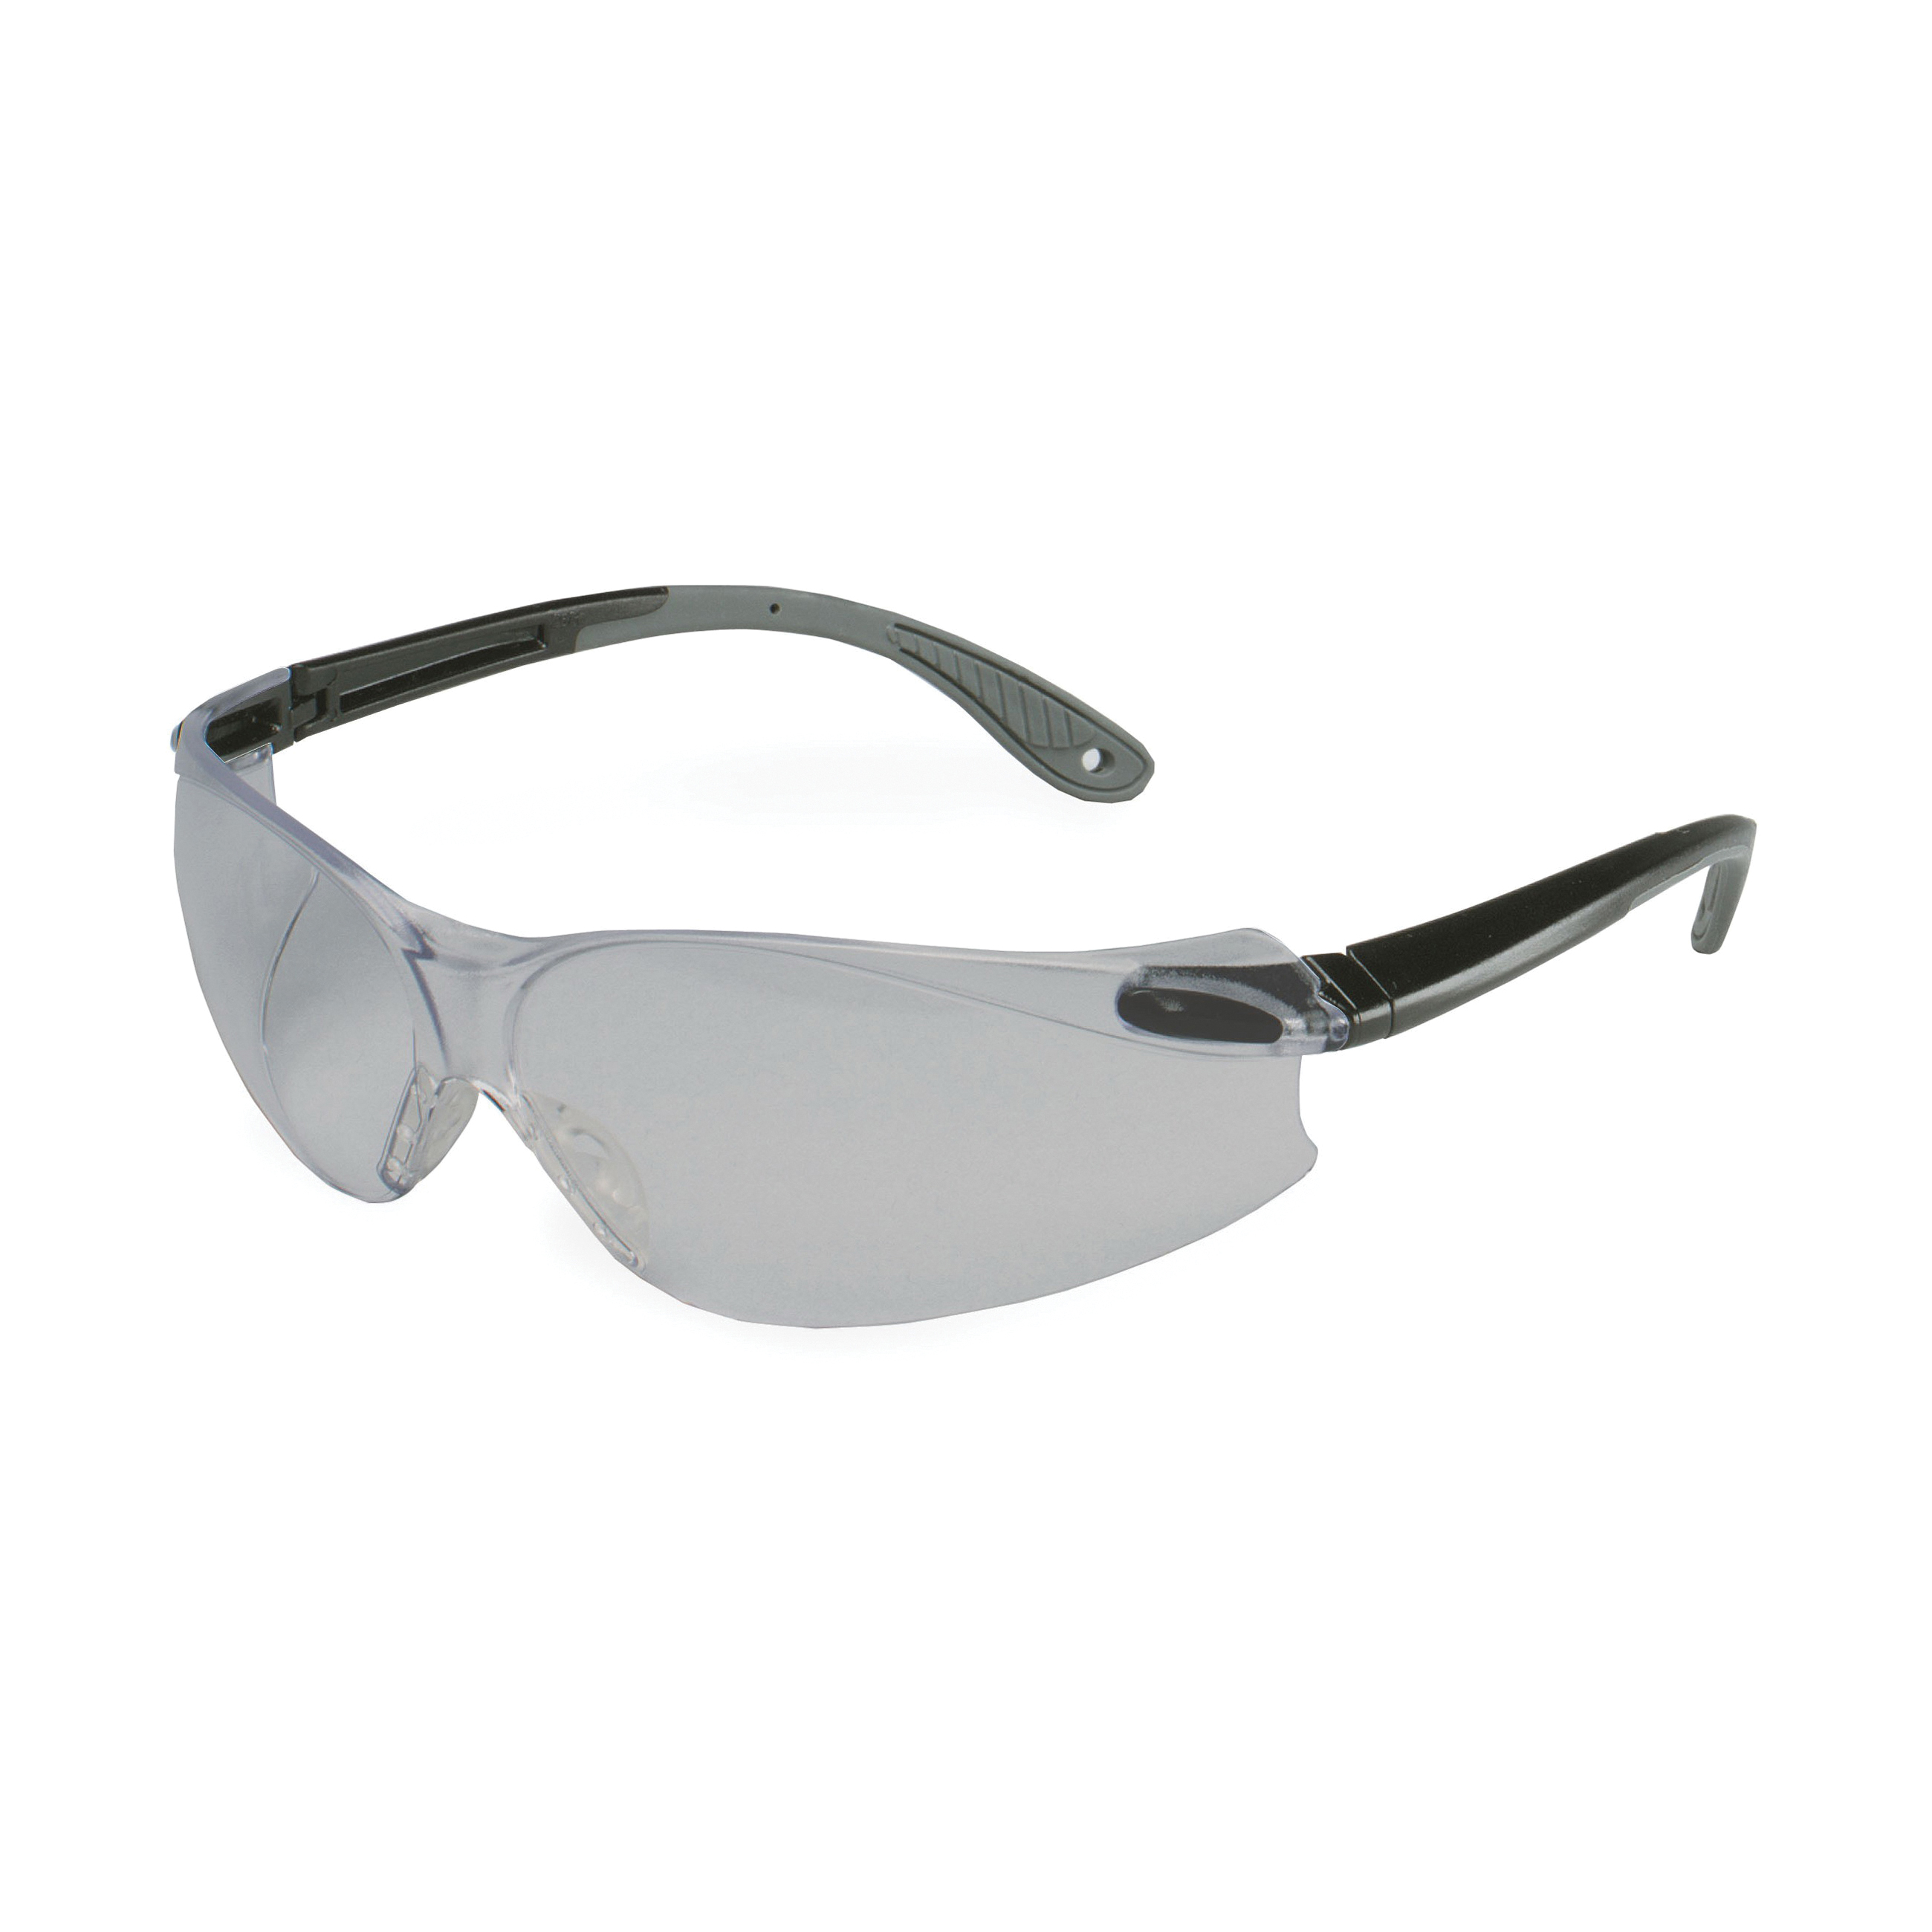 3M™ Virtua™ 078371-62037 V4 Economy Protective Eyewear, Anti-Fog, Gray Lens, Frameless/Wrap Around Frame, Black/Gray, Polycarbonate Frame, Polycarbonate Lens, ANSI Z87.1-2015